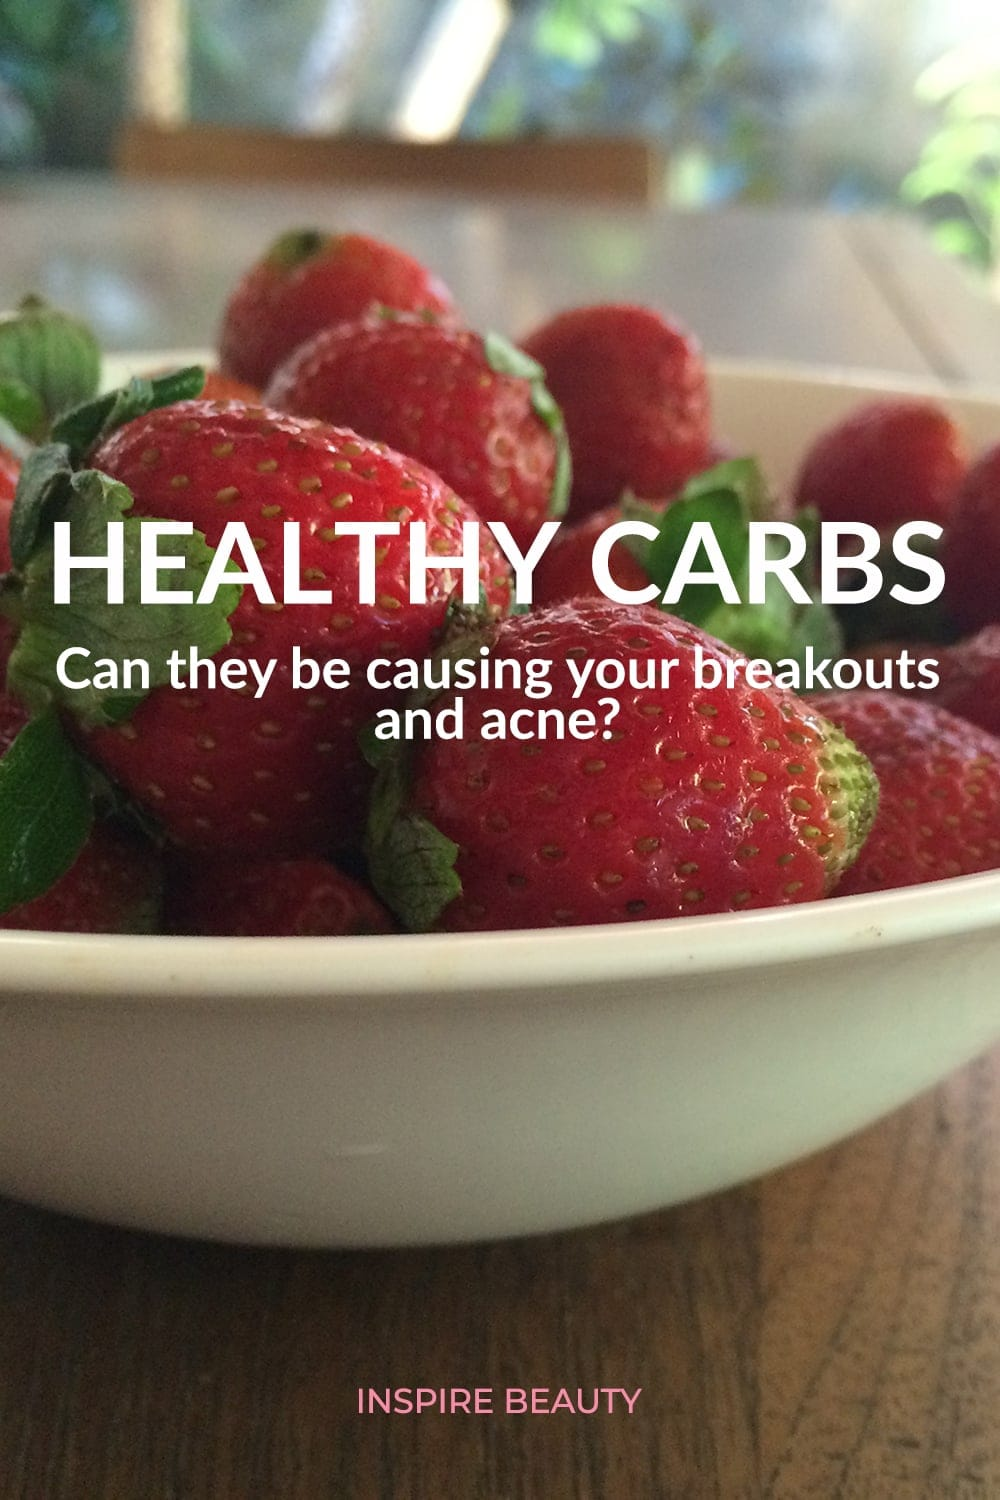 How healthy carbs and fruit could be causing acne and breakouts